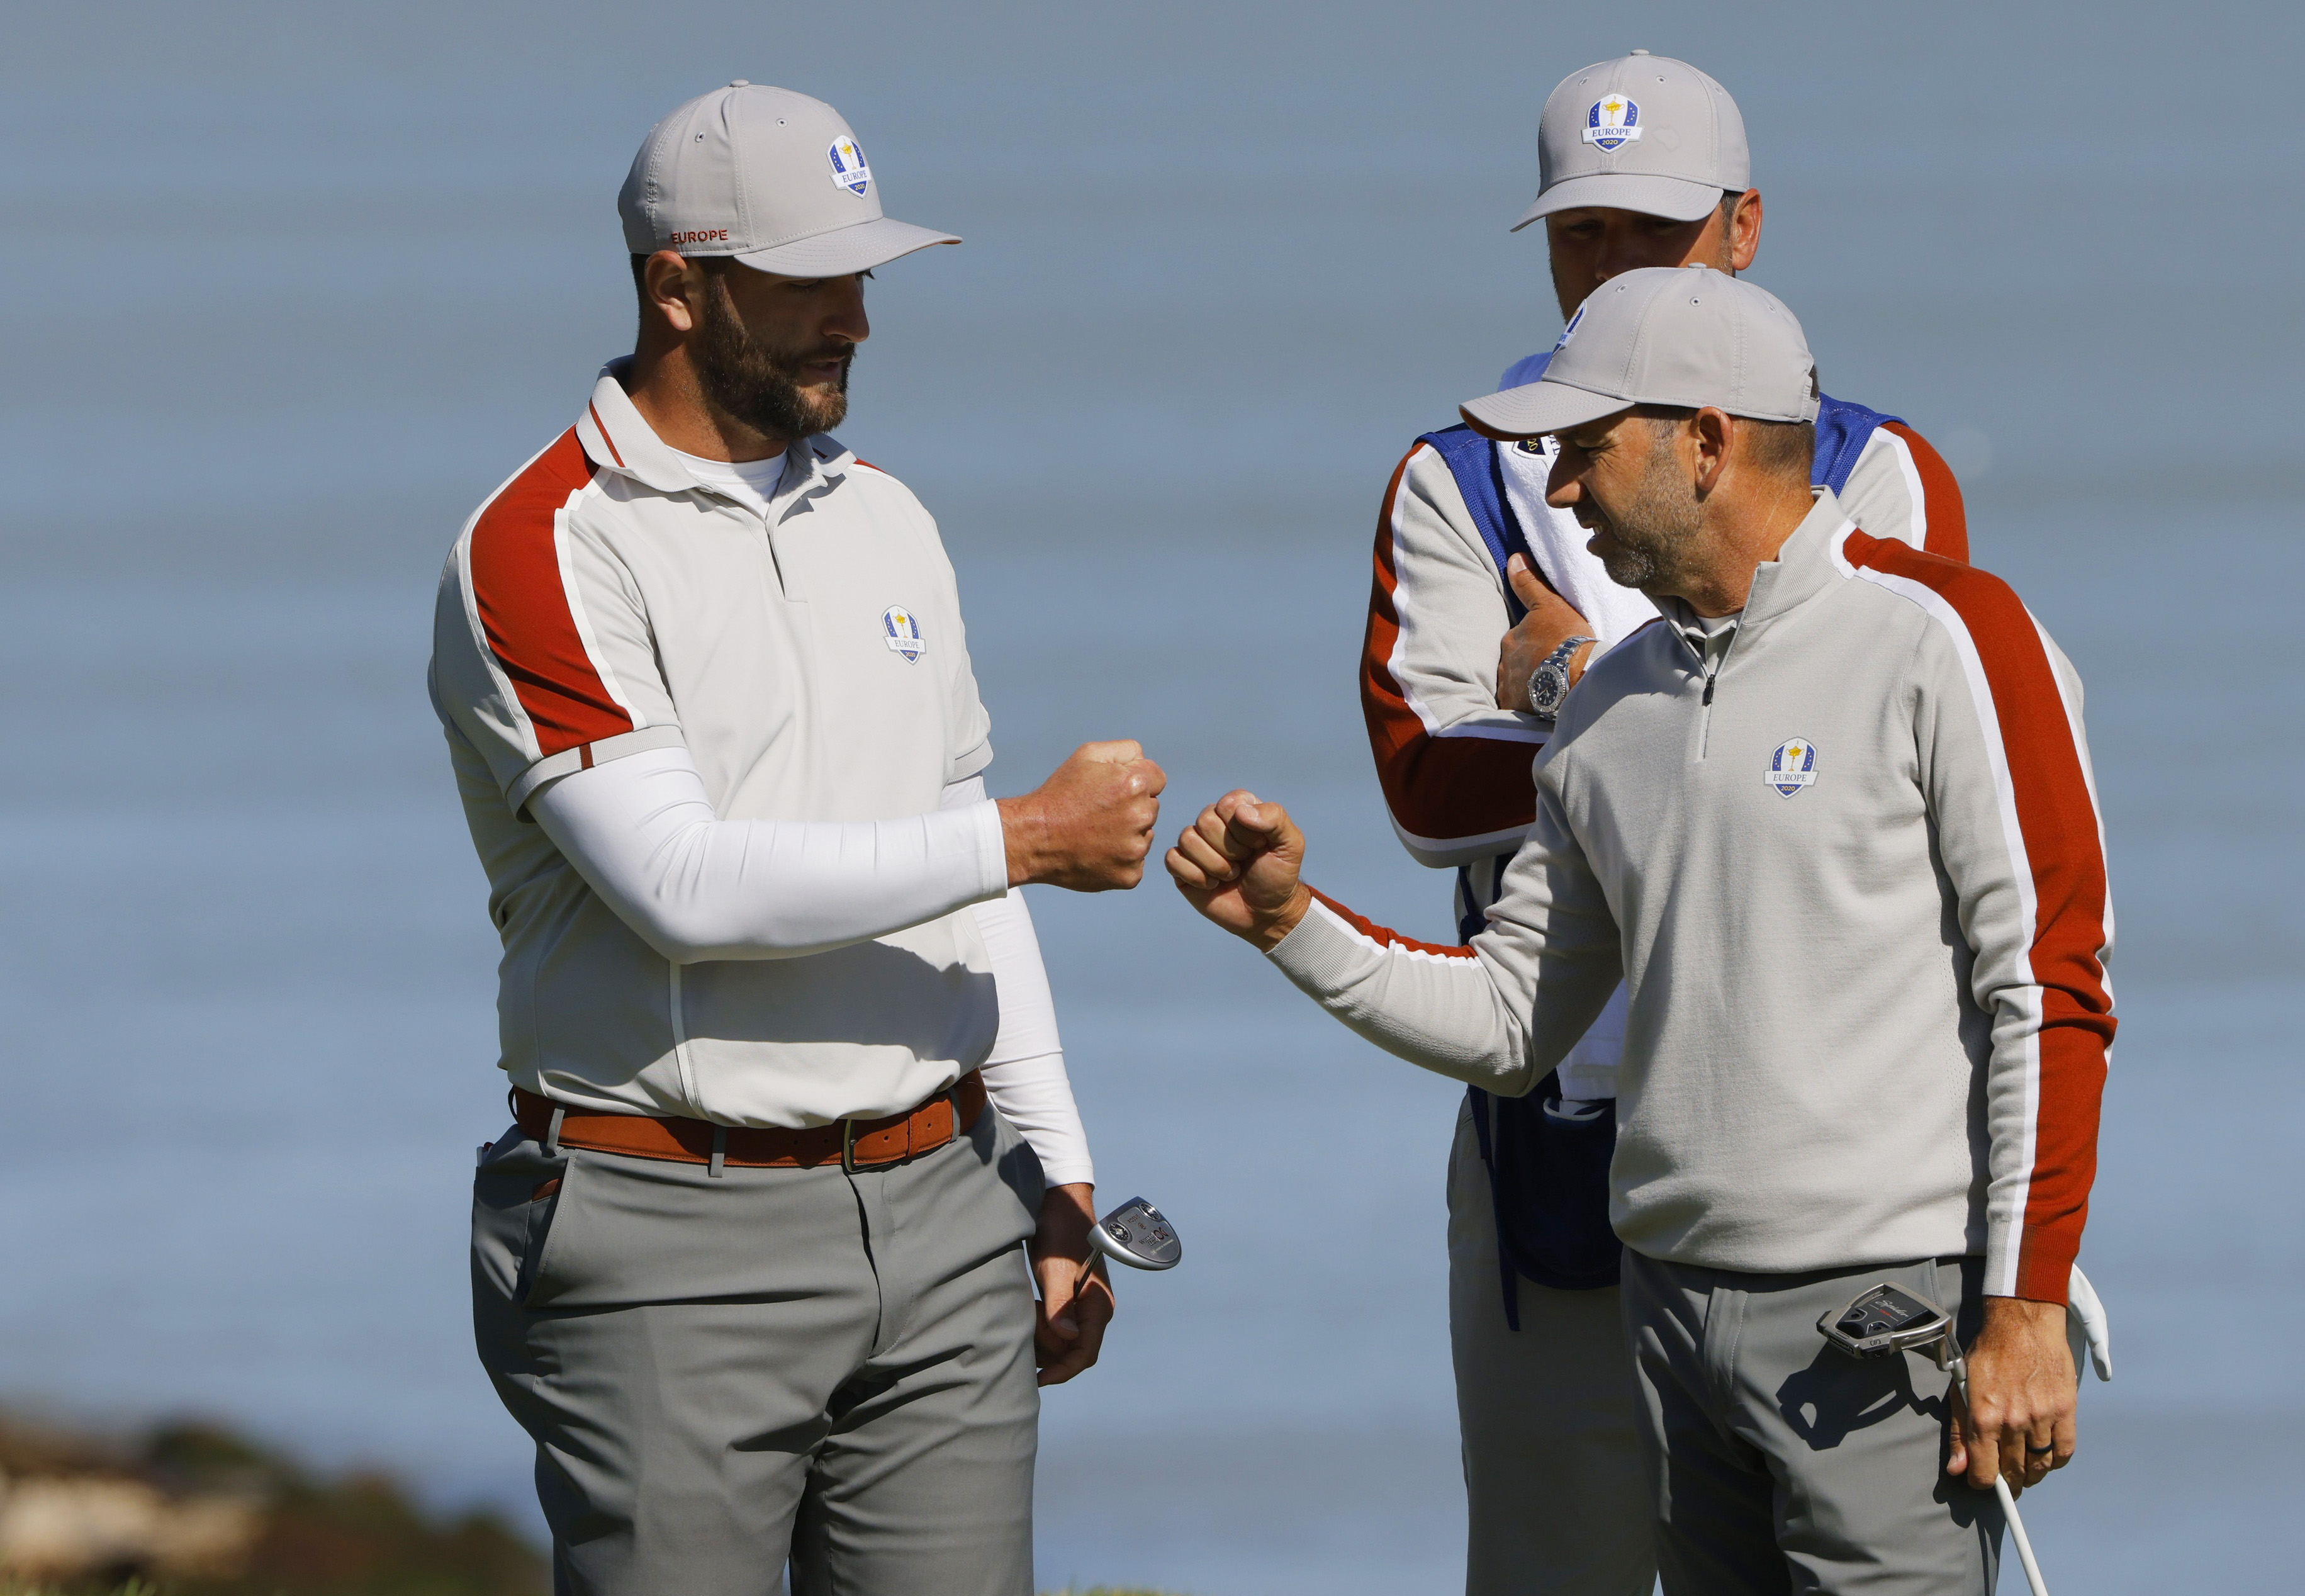 Golf - The 2020 Ryder Cup - Whistling Straits, Sheboygan, Wisconsin, U.S. - September 25, 2021 Team Europe's Jon Rahm and Team Europe's Sergio Garcia celebrate on the 17th green after winning the match during the Foursomes REUTERS/Brian Snyder